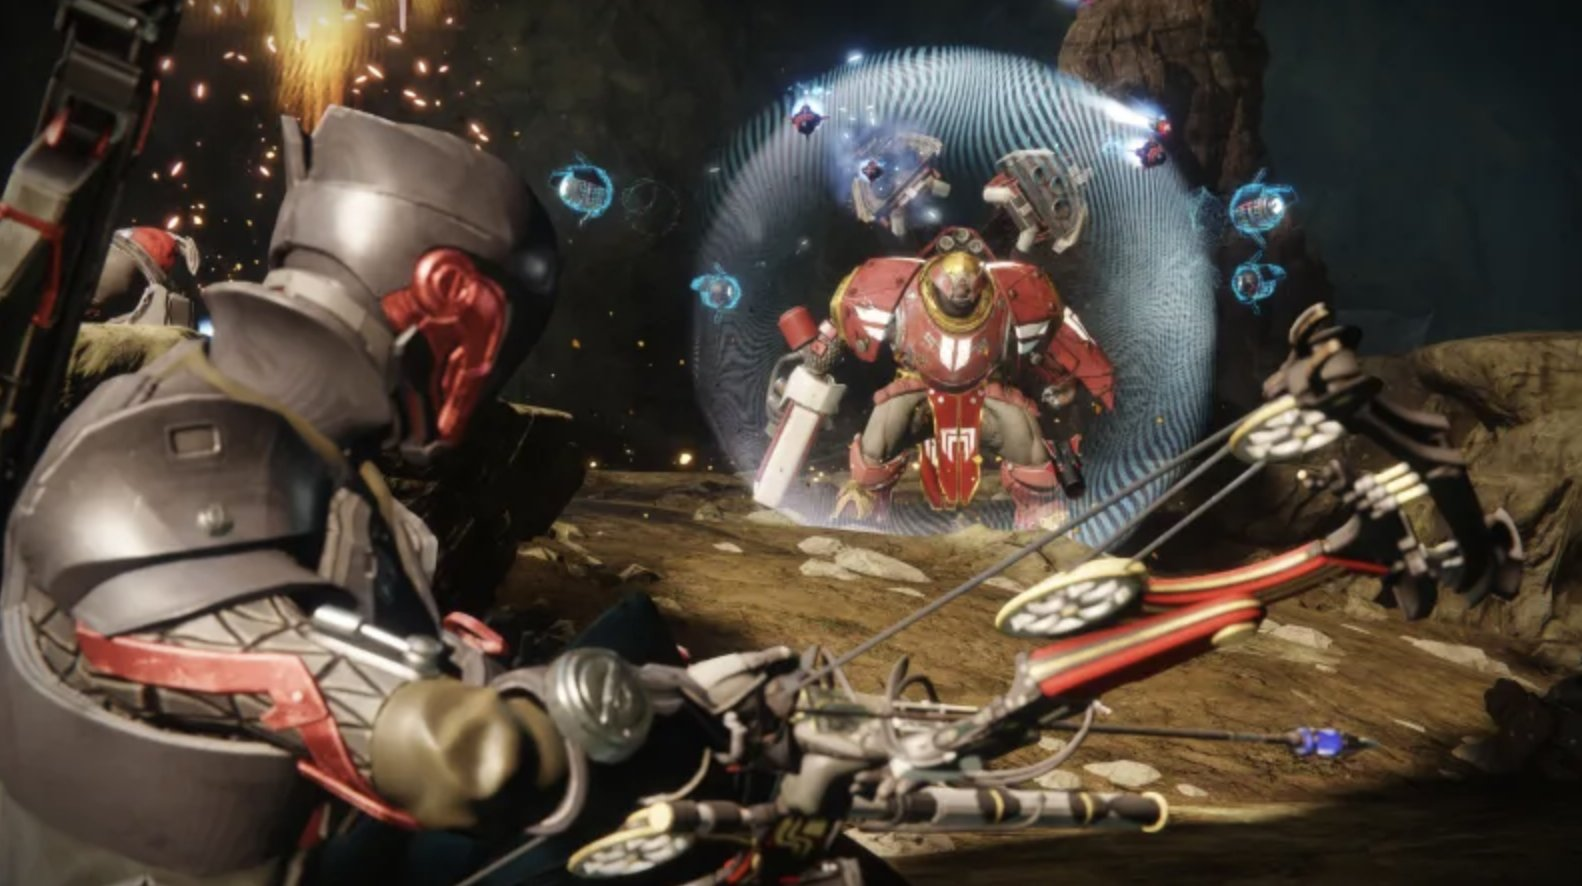 Breaking: Bungie splits with Activision. https://t.co/94VwDiUsrY https://t.co/CHm7mfK2kc